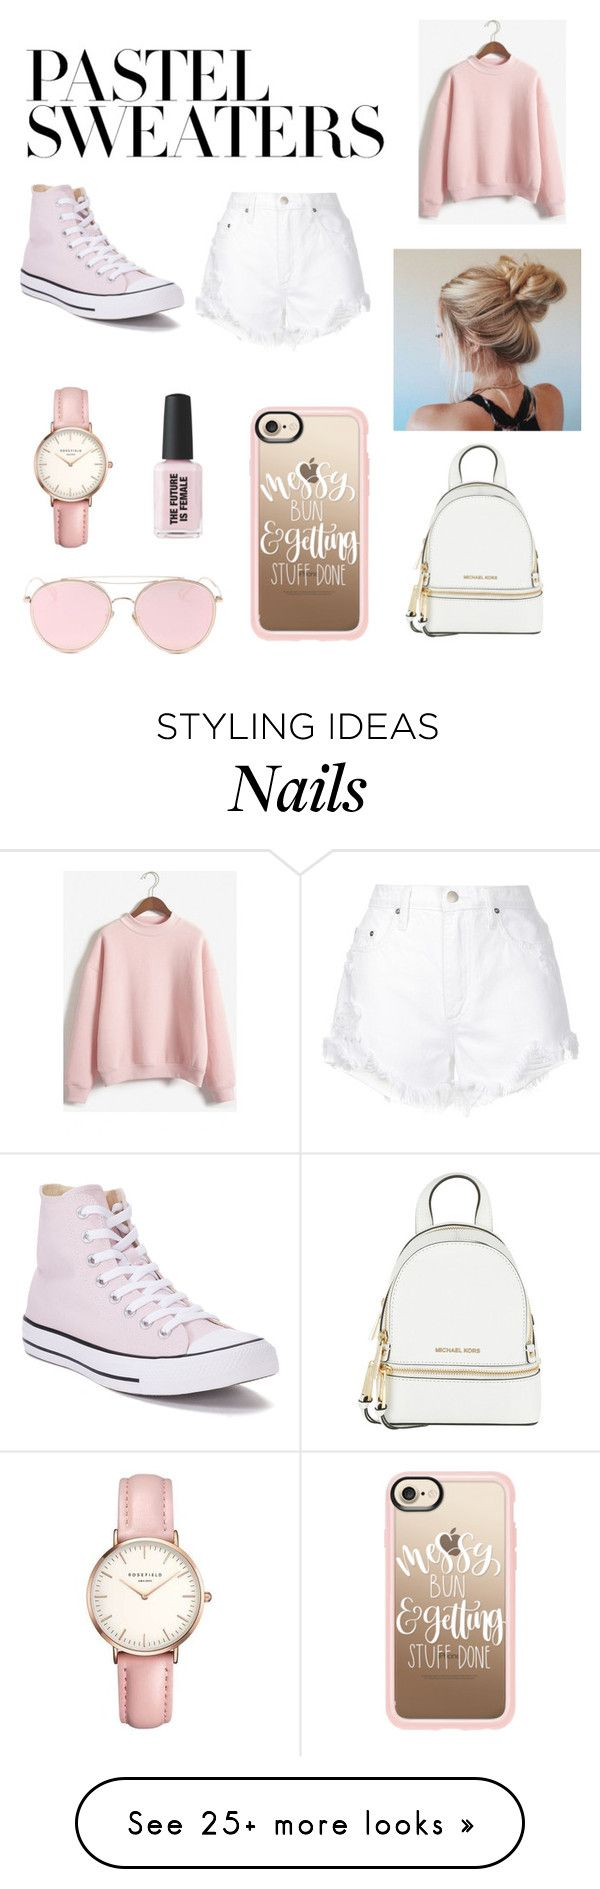 """Pastel"" by immibroadley14 on Polyvore featuring WithChic, Nobody Denim, Converse, Casetify, Topshop, LMNT, MICHAEL Michael Kors and pastelsweaters"